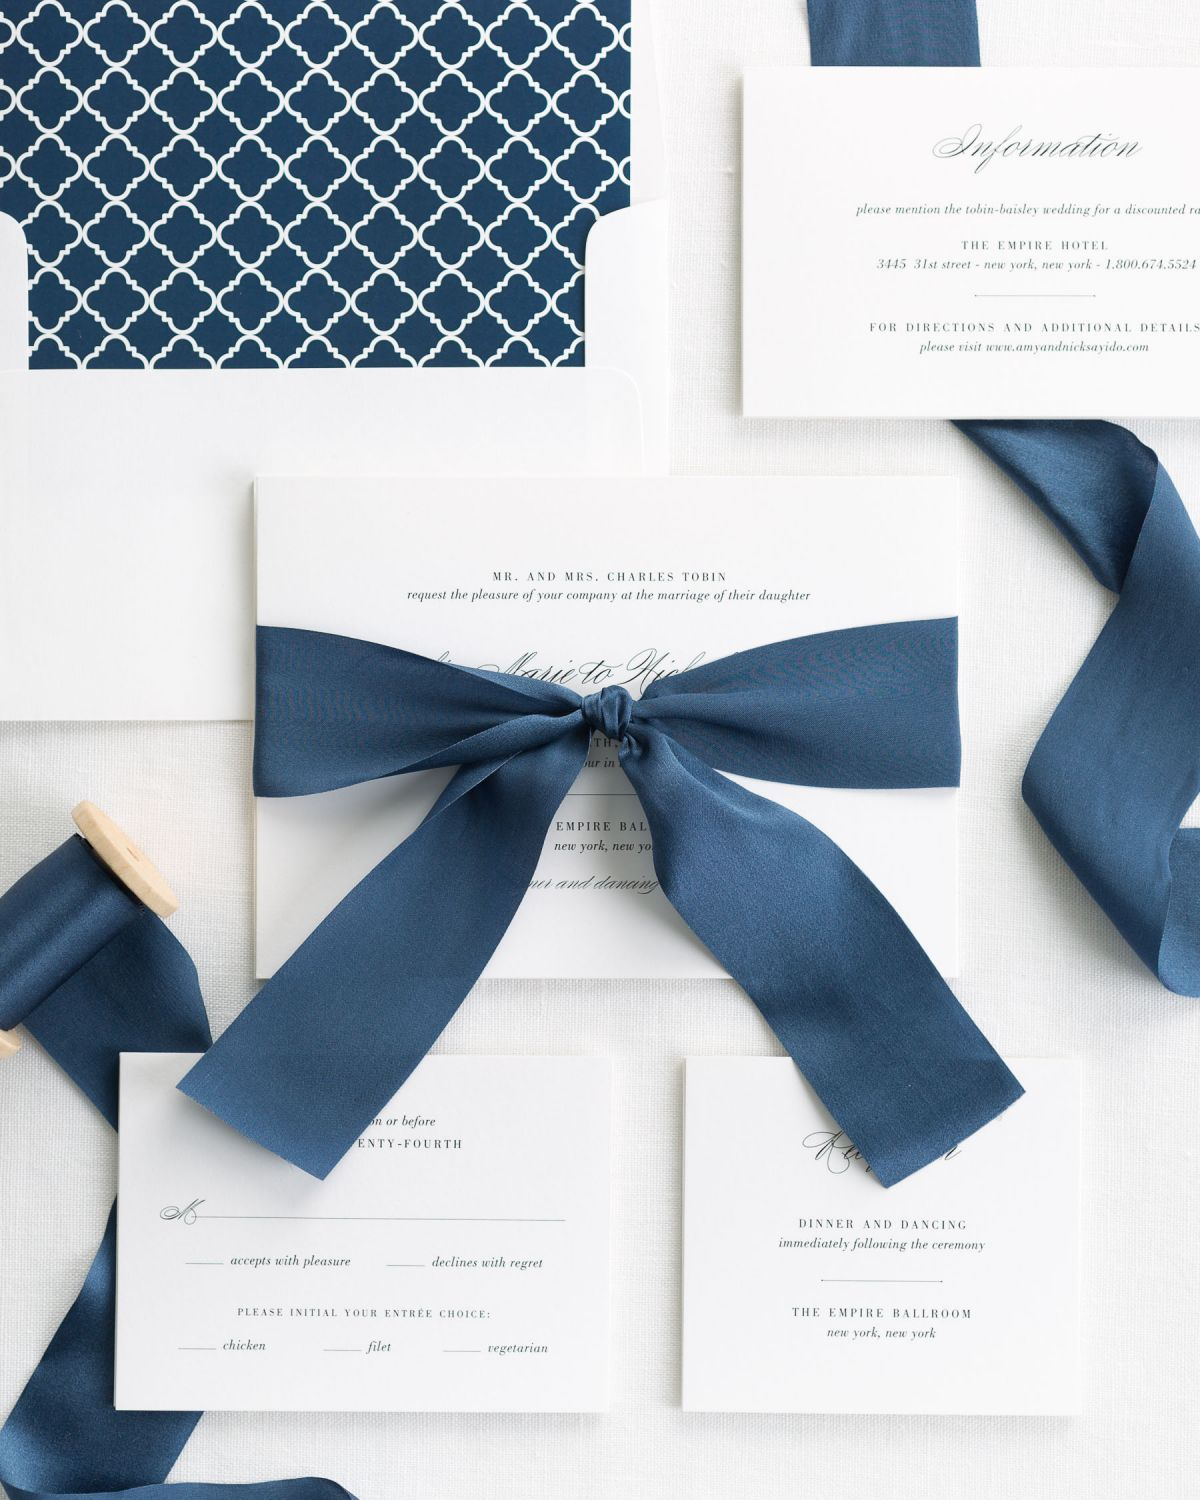 Complete Wedding Invitaitons with Blue Ribbon and Enclosures